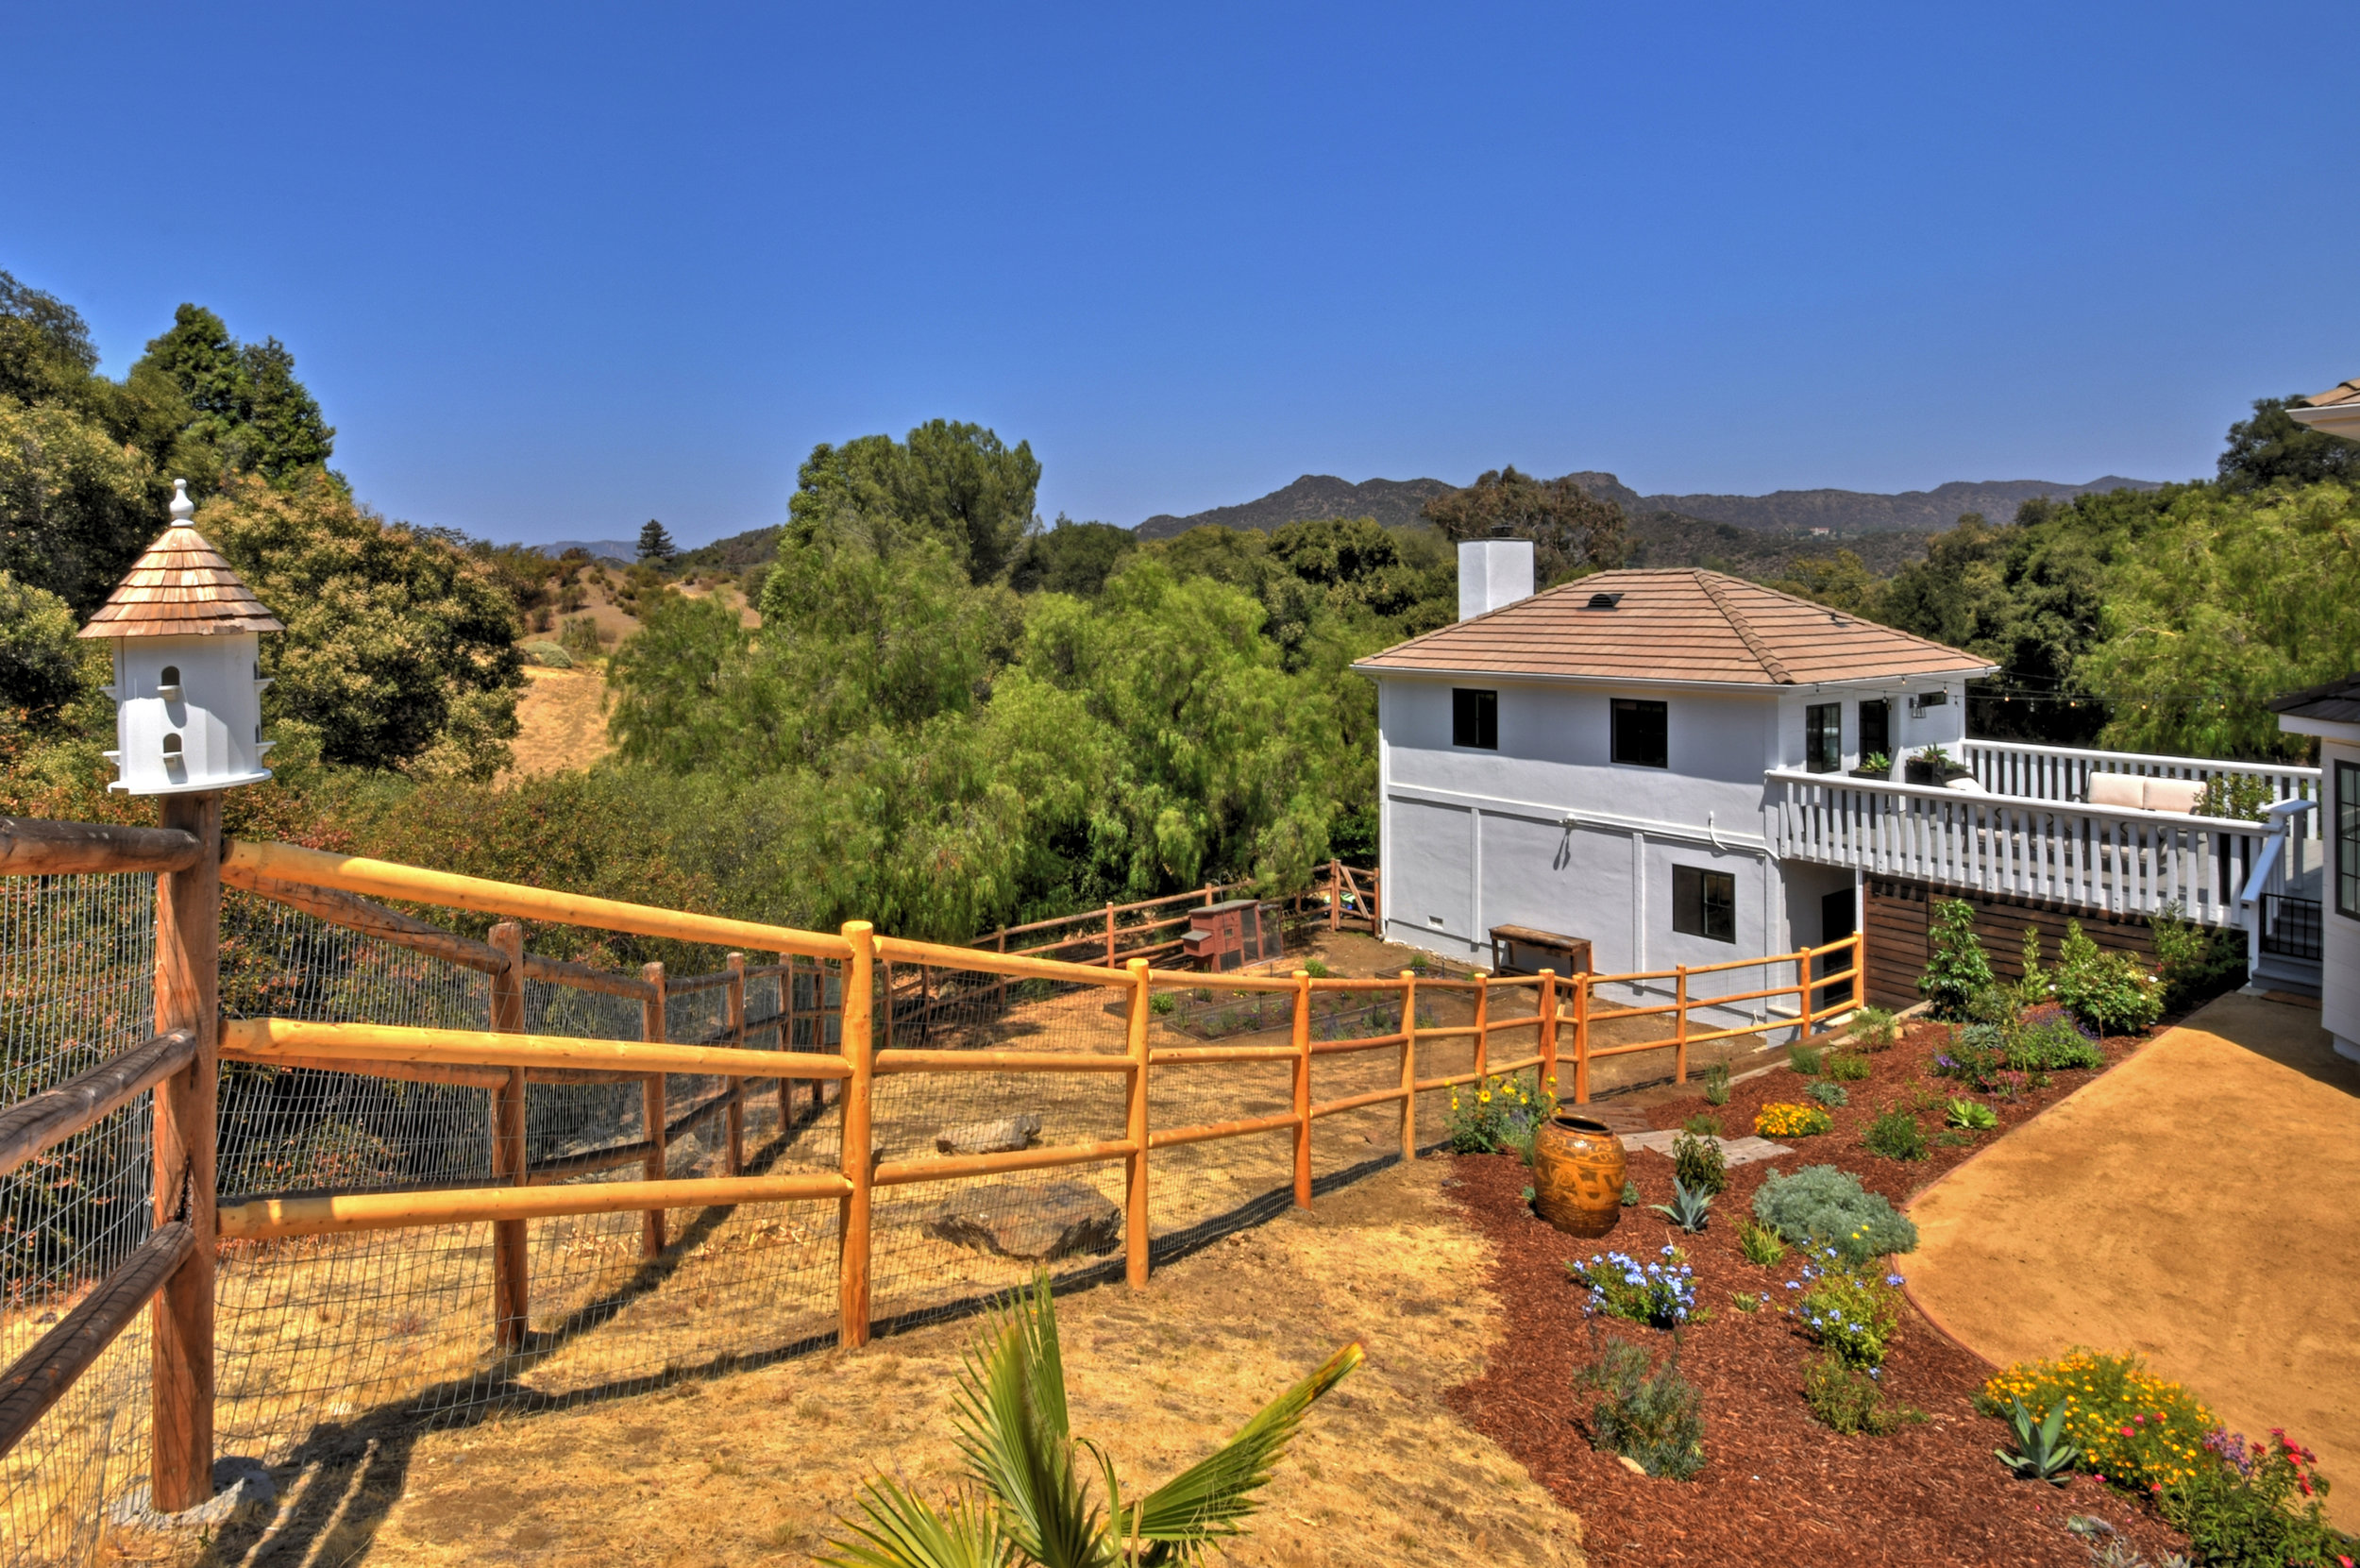 032 Back 560 Cold Canyon Road For Sale Lease The Malibu Life Team Luxury Real Estate.jpg